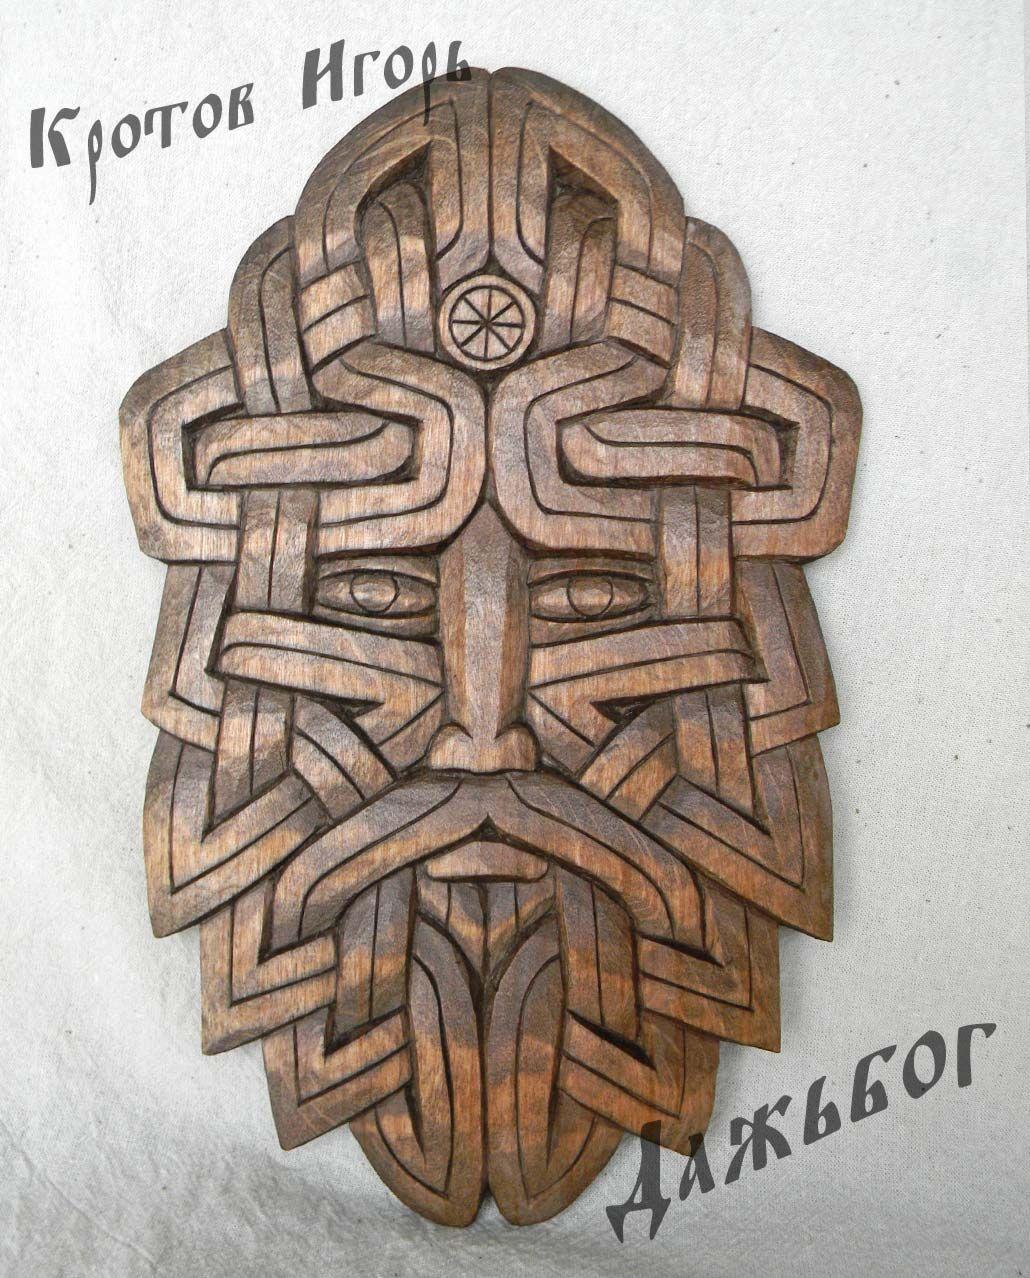 Slavic god Dadjbog    #original woodcarving   Slavic style   Slavic gods   pagan gods   Viking age   Viking era   Nordic art    Nordic gods    ancient gods   Russians gods  braided ornament    Souvenirs woodcarving     Russians Souvenirs